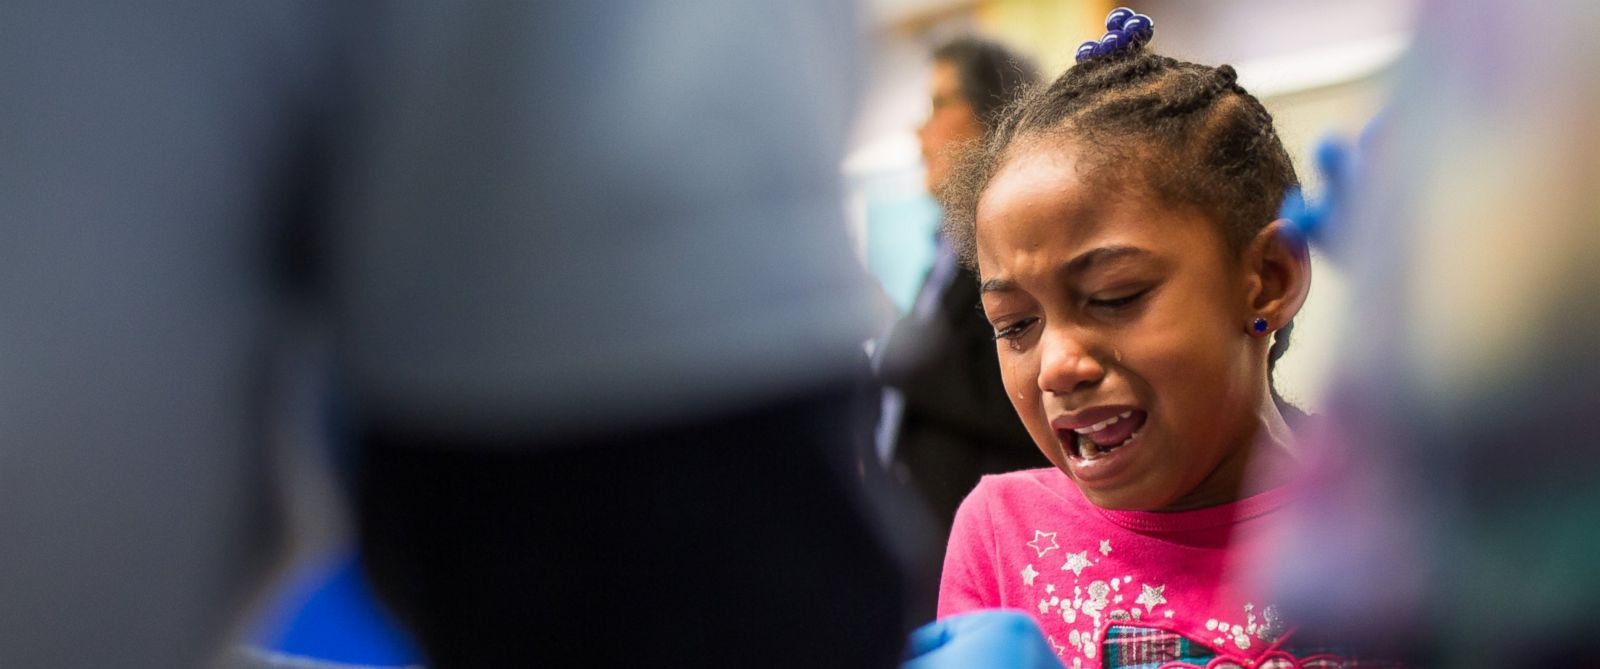 The Aftermath of the Flint Water Crisis: 3 Years Later